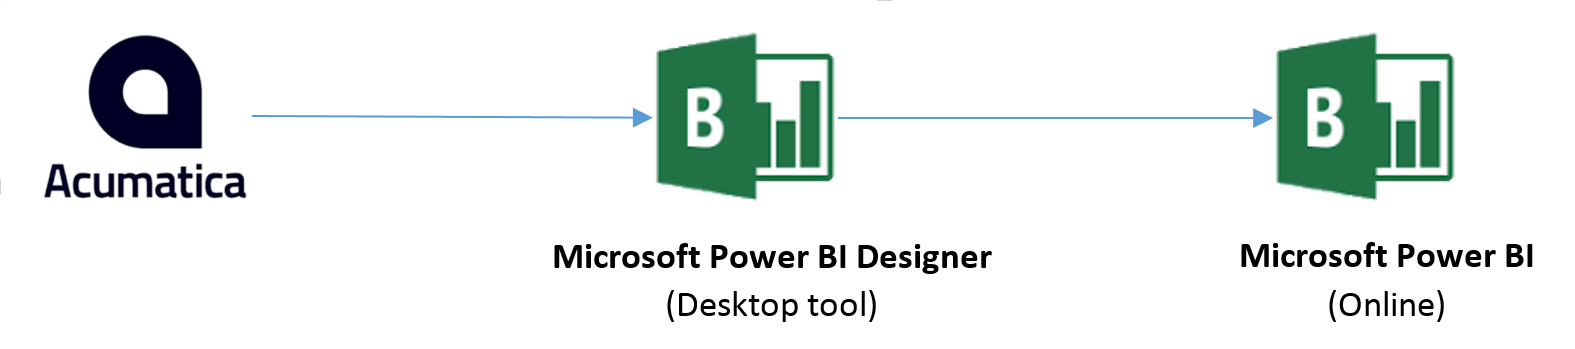 The Power BI Designer can consume OData formatted data with the JSON notation